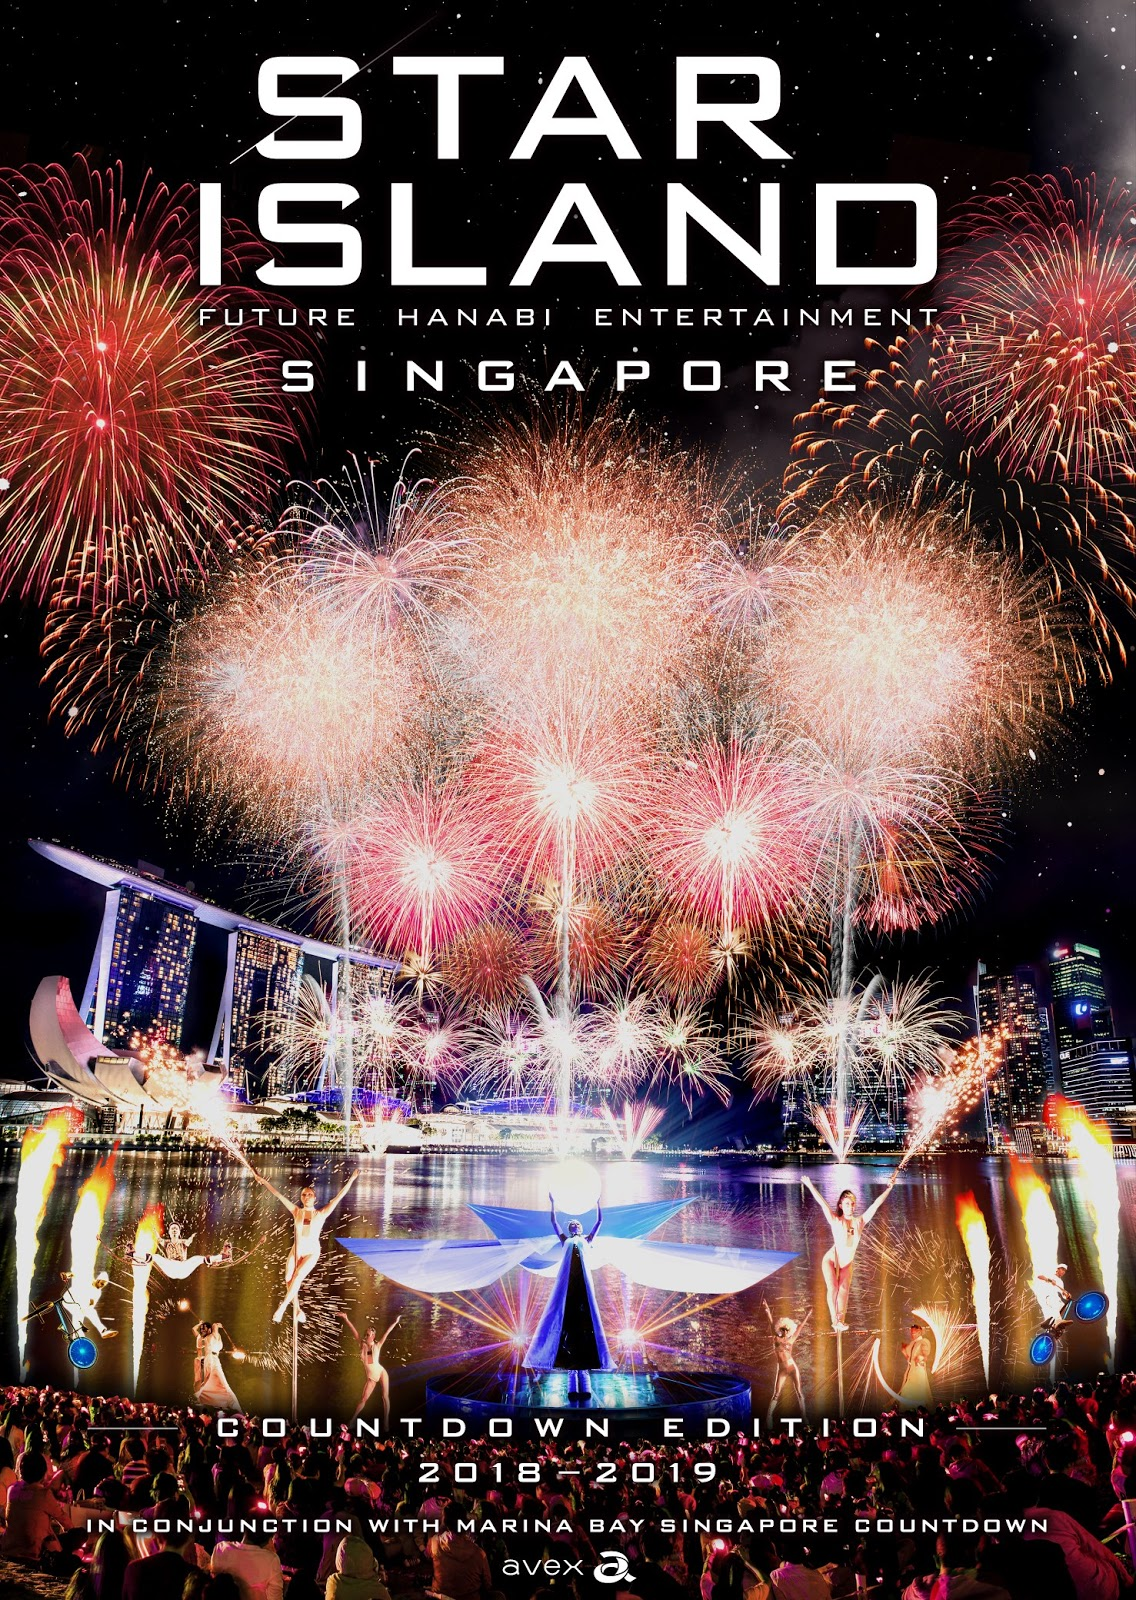 star-island-singapore-2019countdown edition